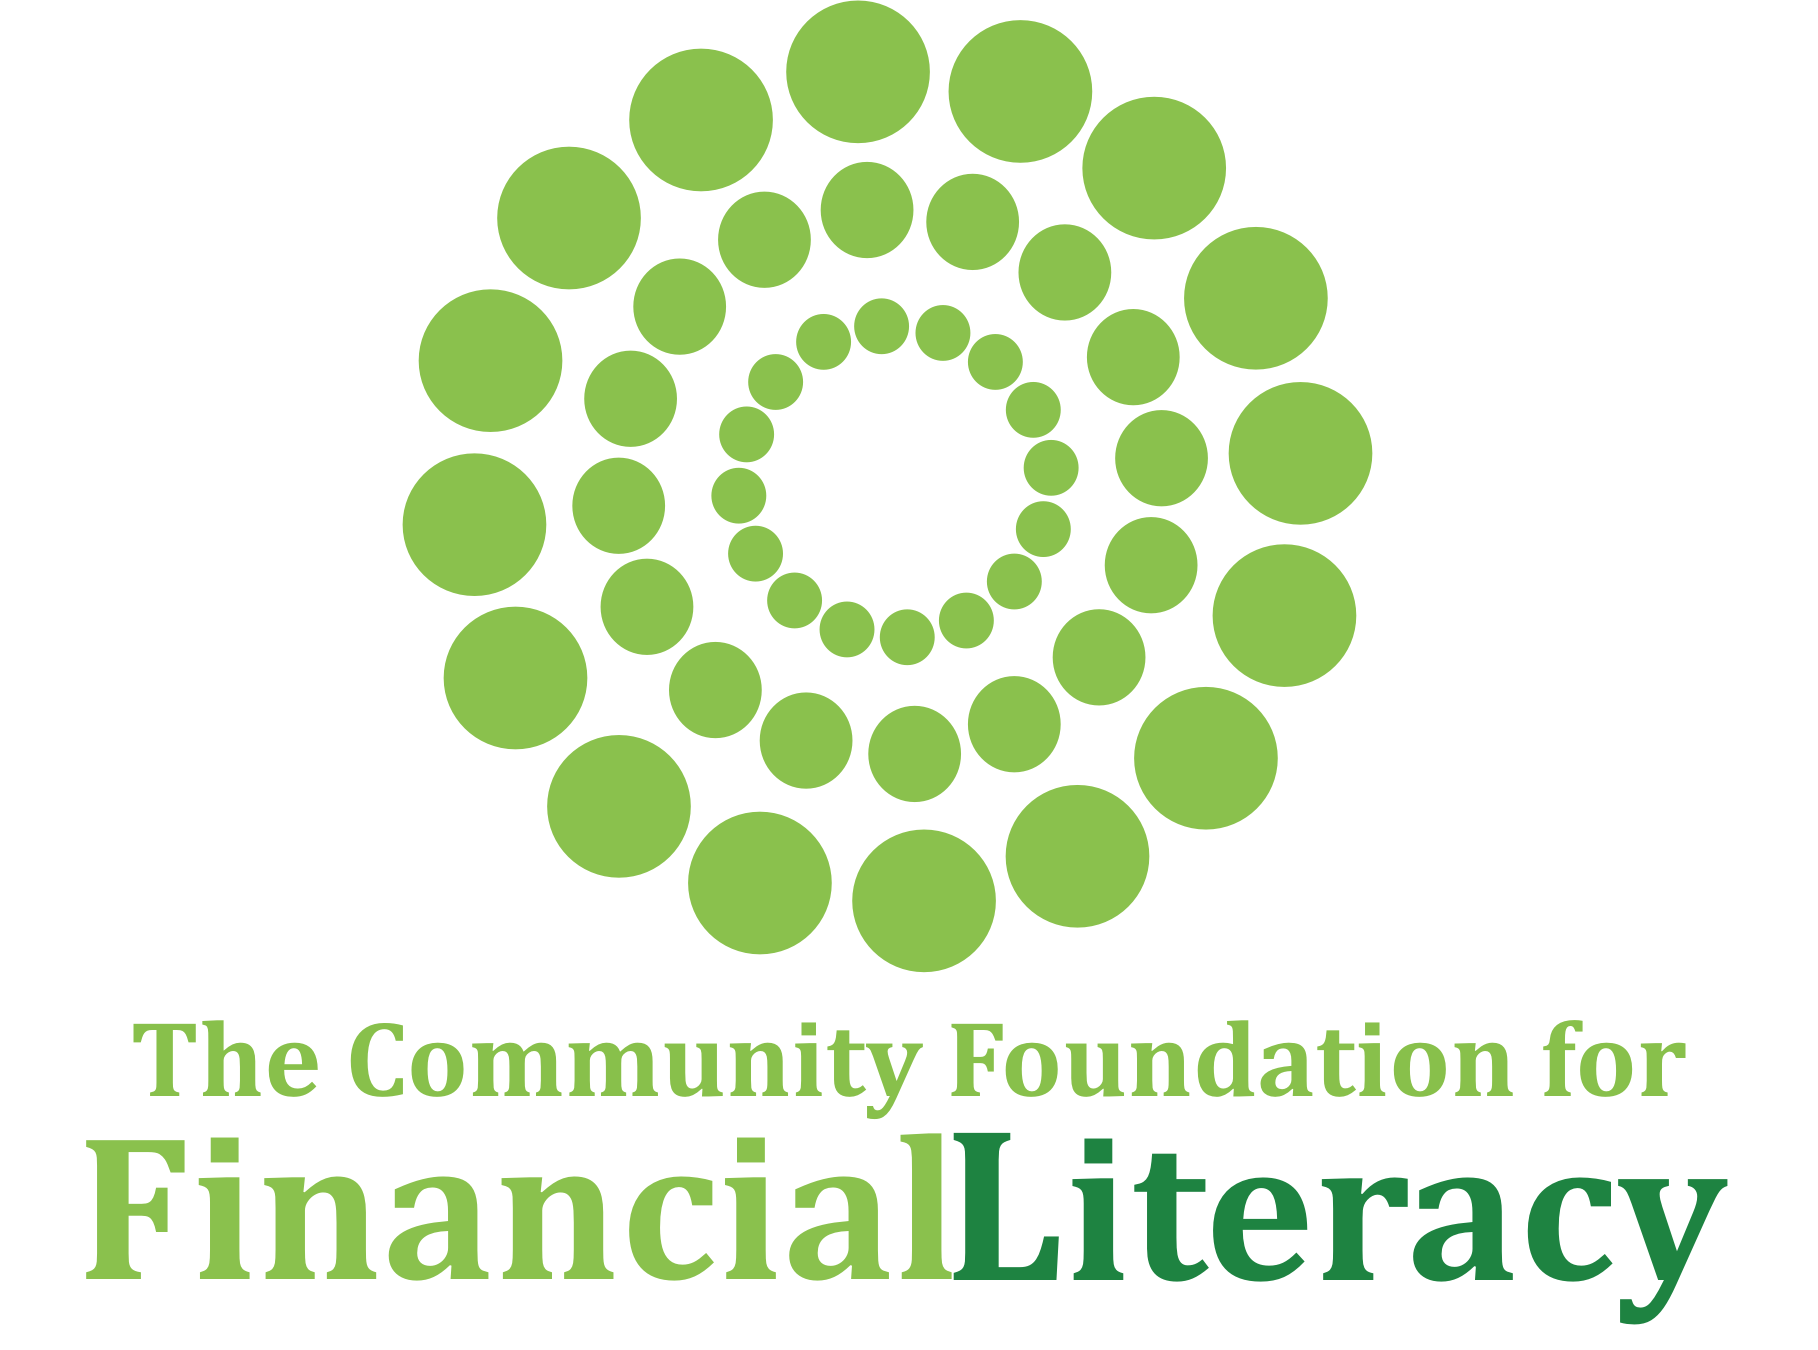 The Community Foundation for Financial Literacy